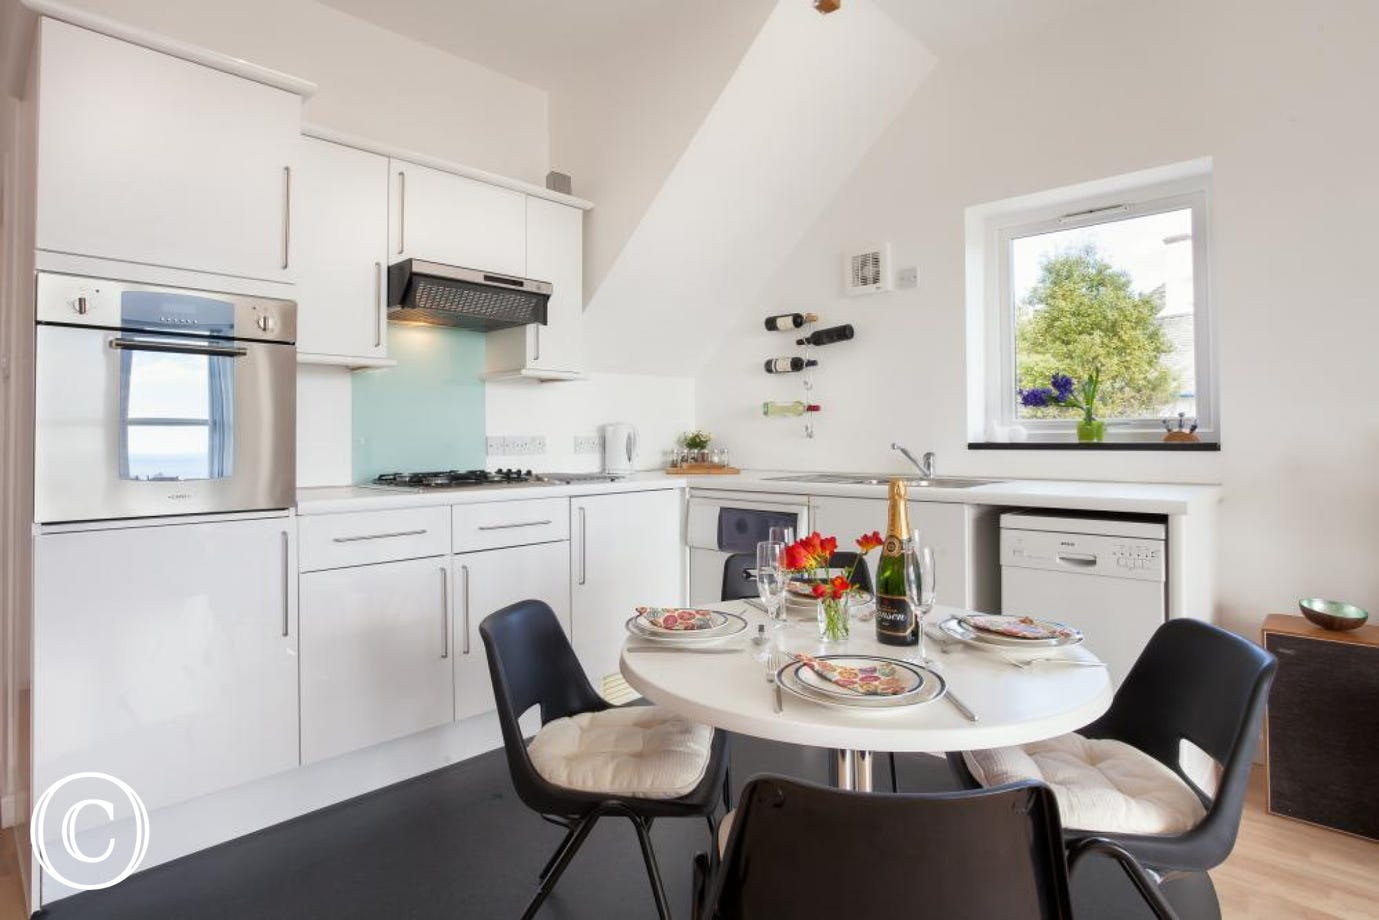 Modern, Well-Equipped Holiday Apartment in Torquay, Torbay with Kitchen Diner